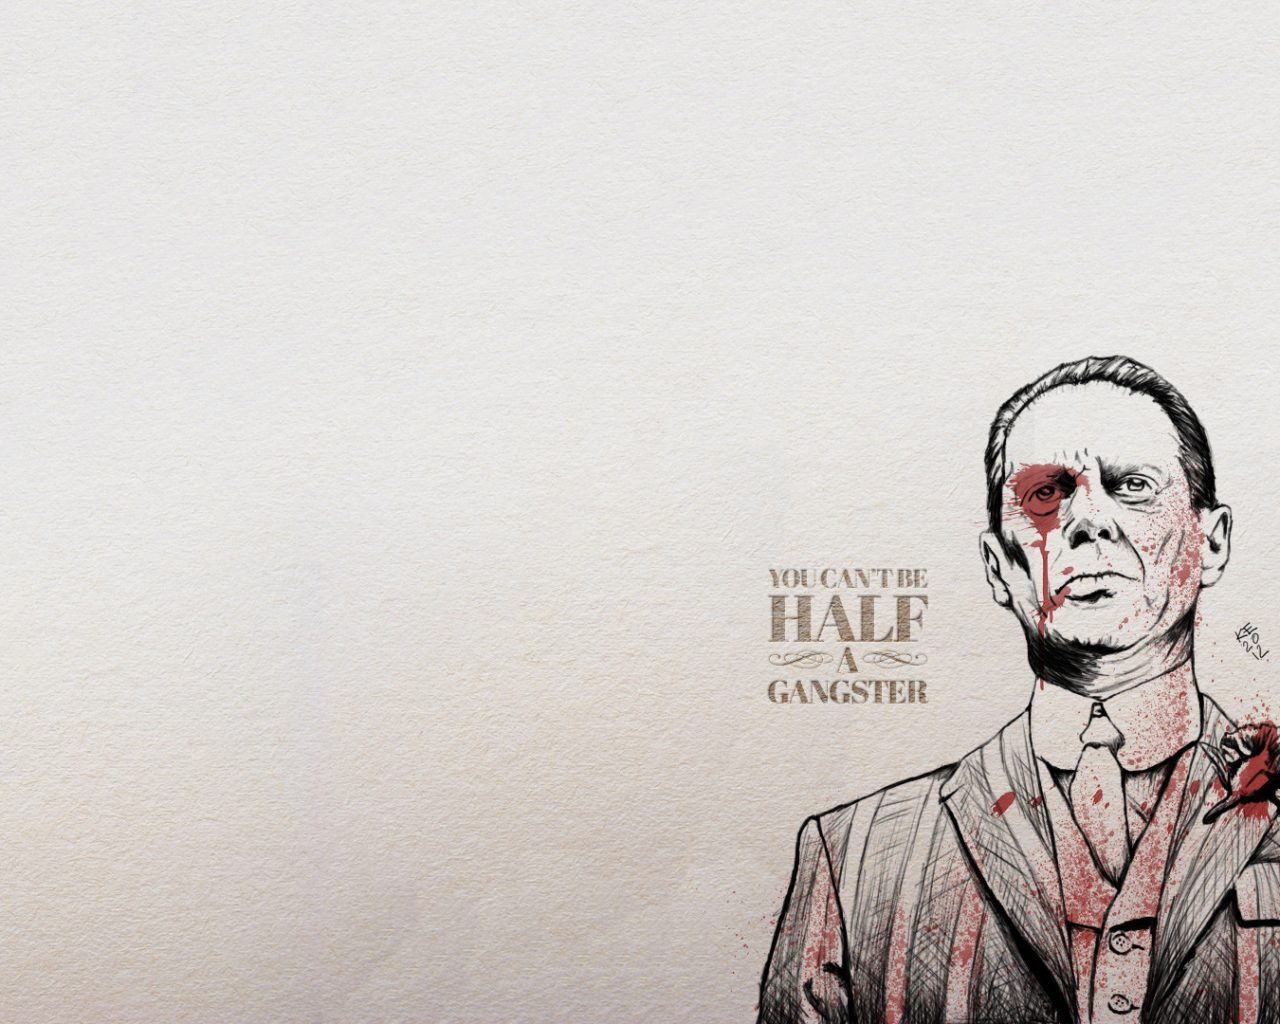 1280x1024 - Nucky Thompson Wallpapers 22